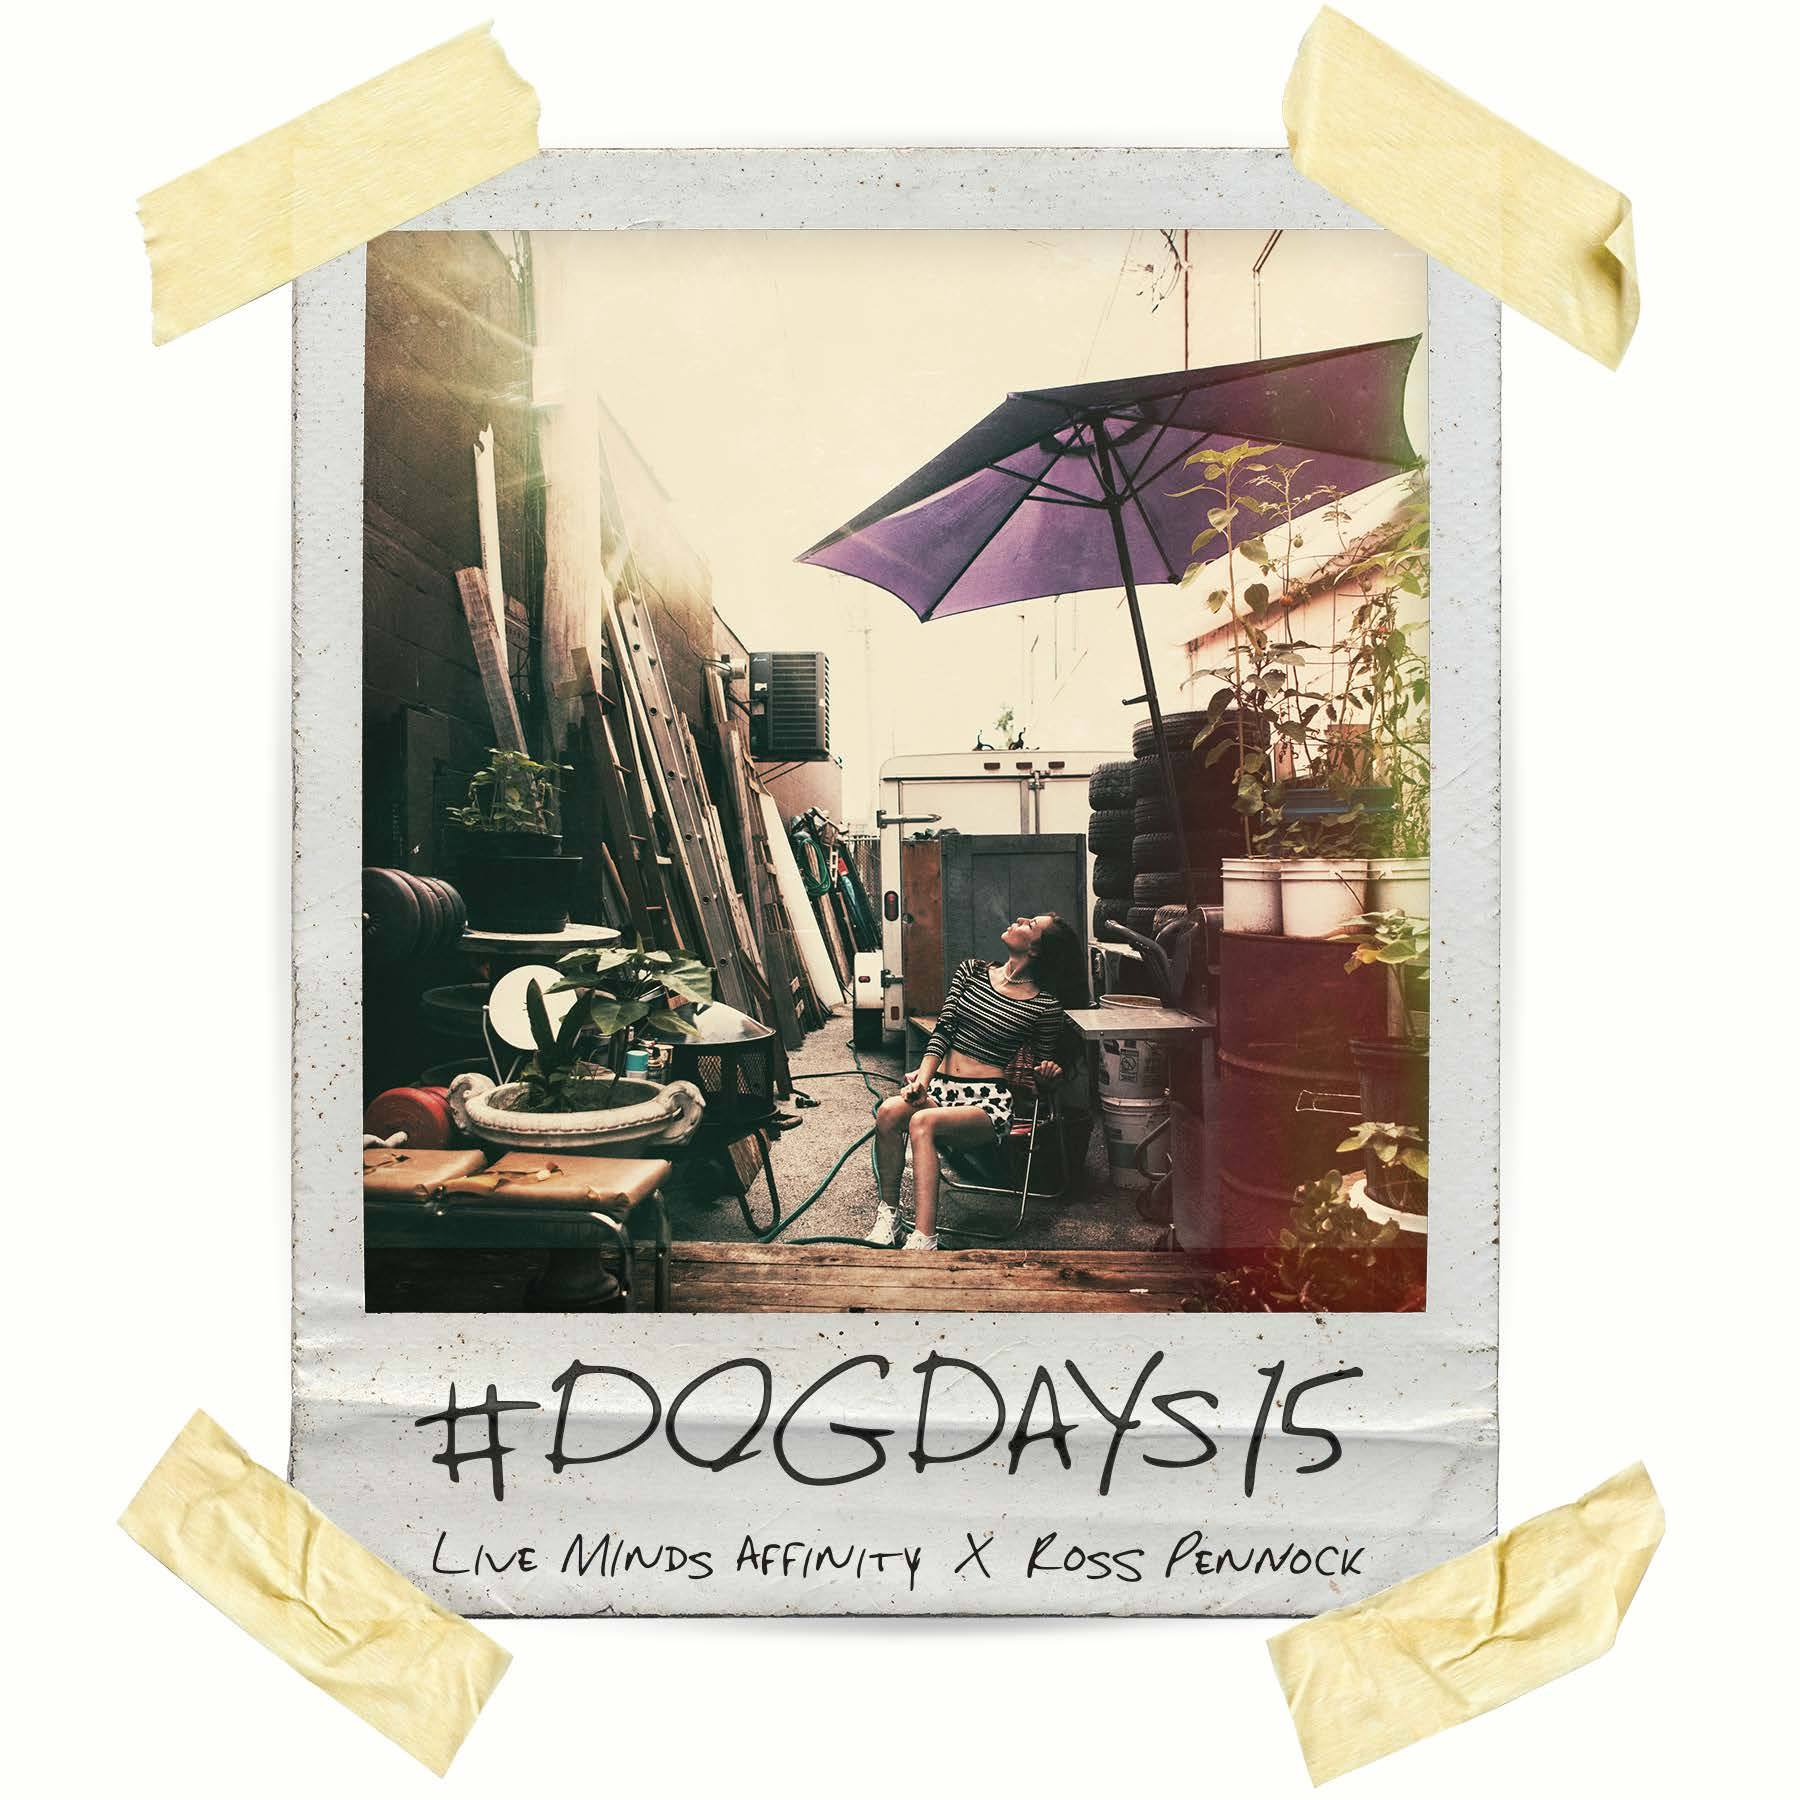 Live Minds Affinity Drops #DOGDAYS15, an Ode to a Carefree Summer